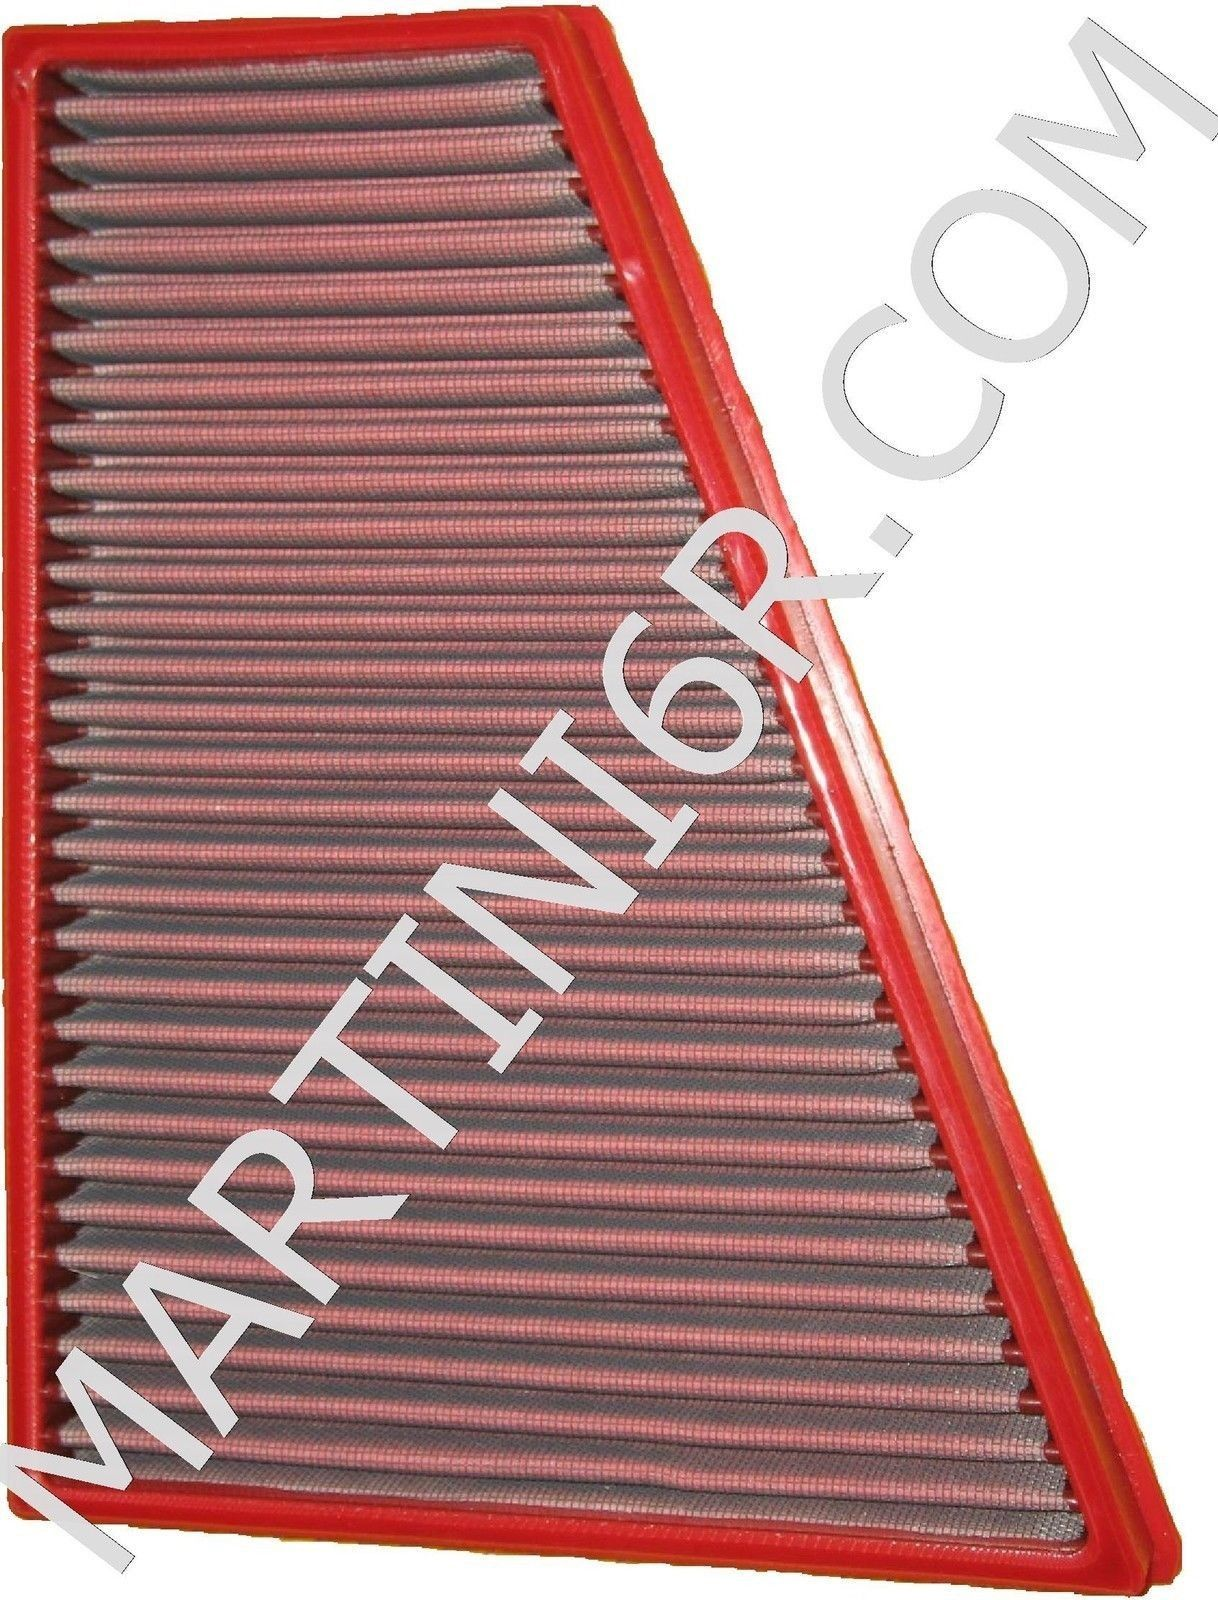 BMC762/20 FILTRO ARIA SPORTIVO BMC AIR FILTERS MERCERDES CLASS A (W 176) 180 CDI